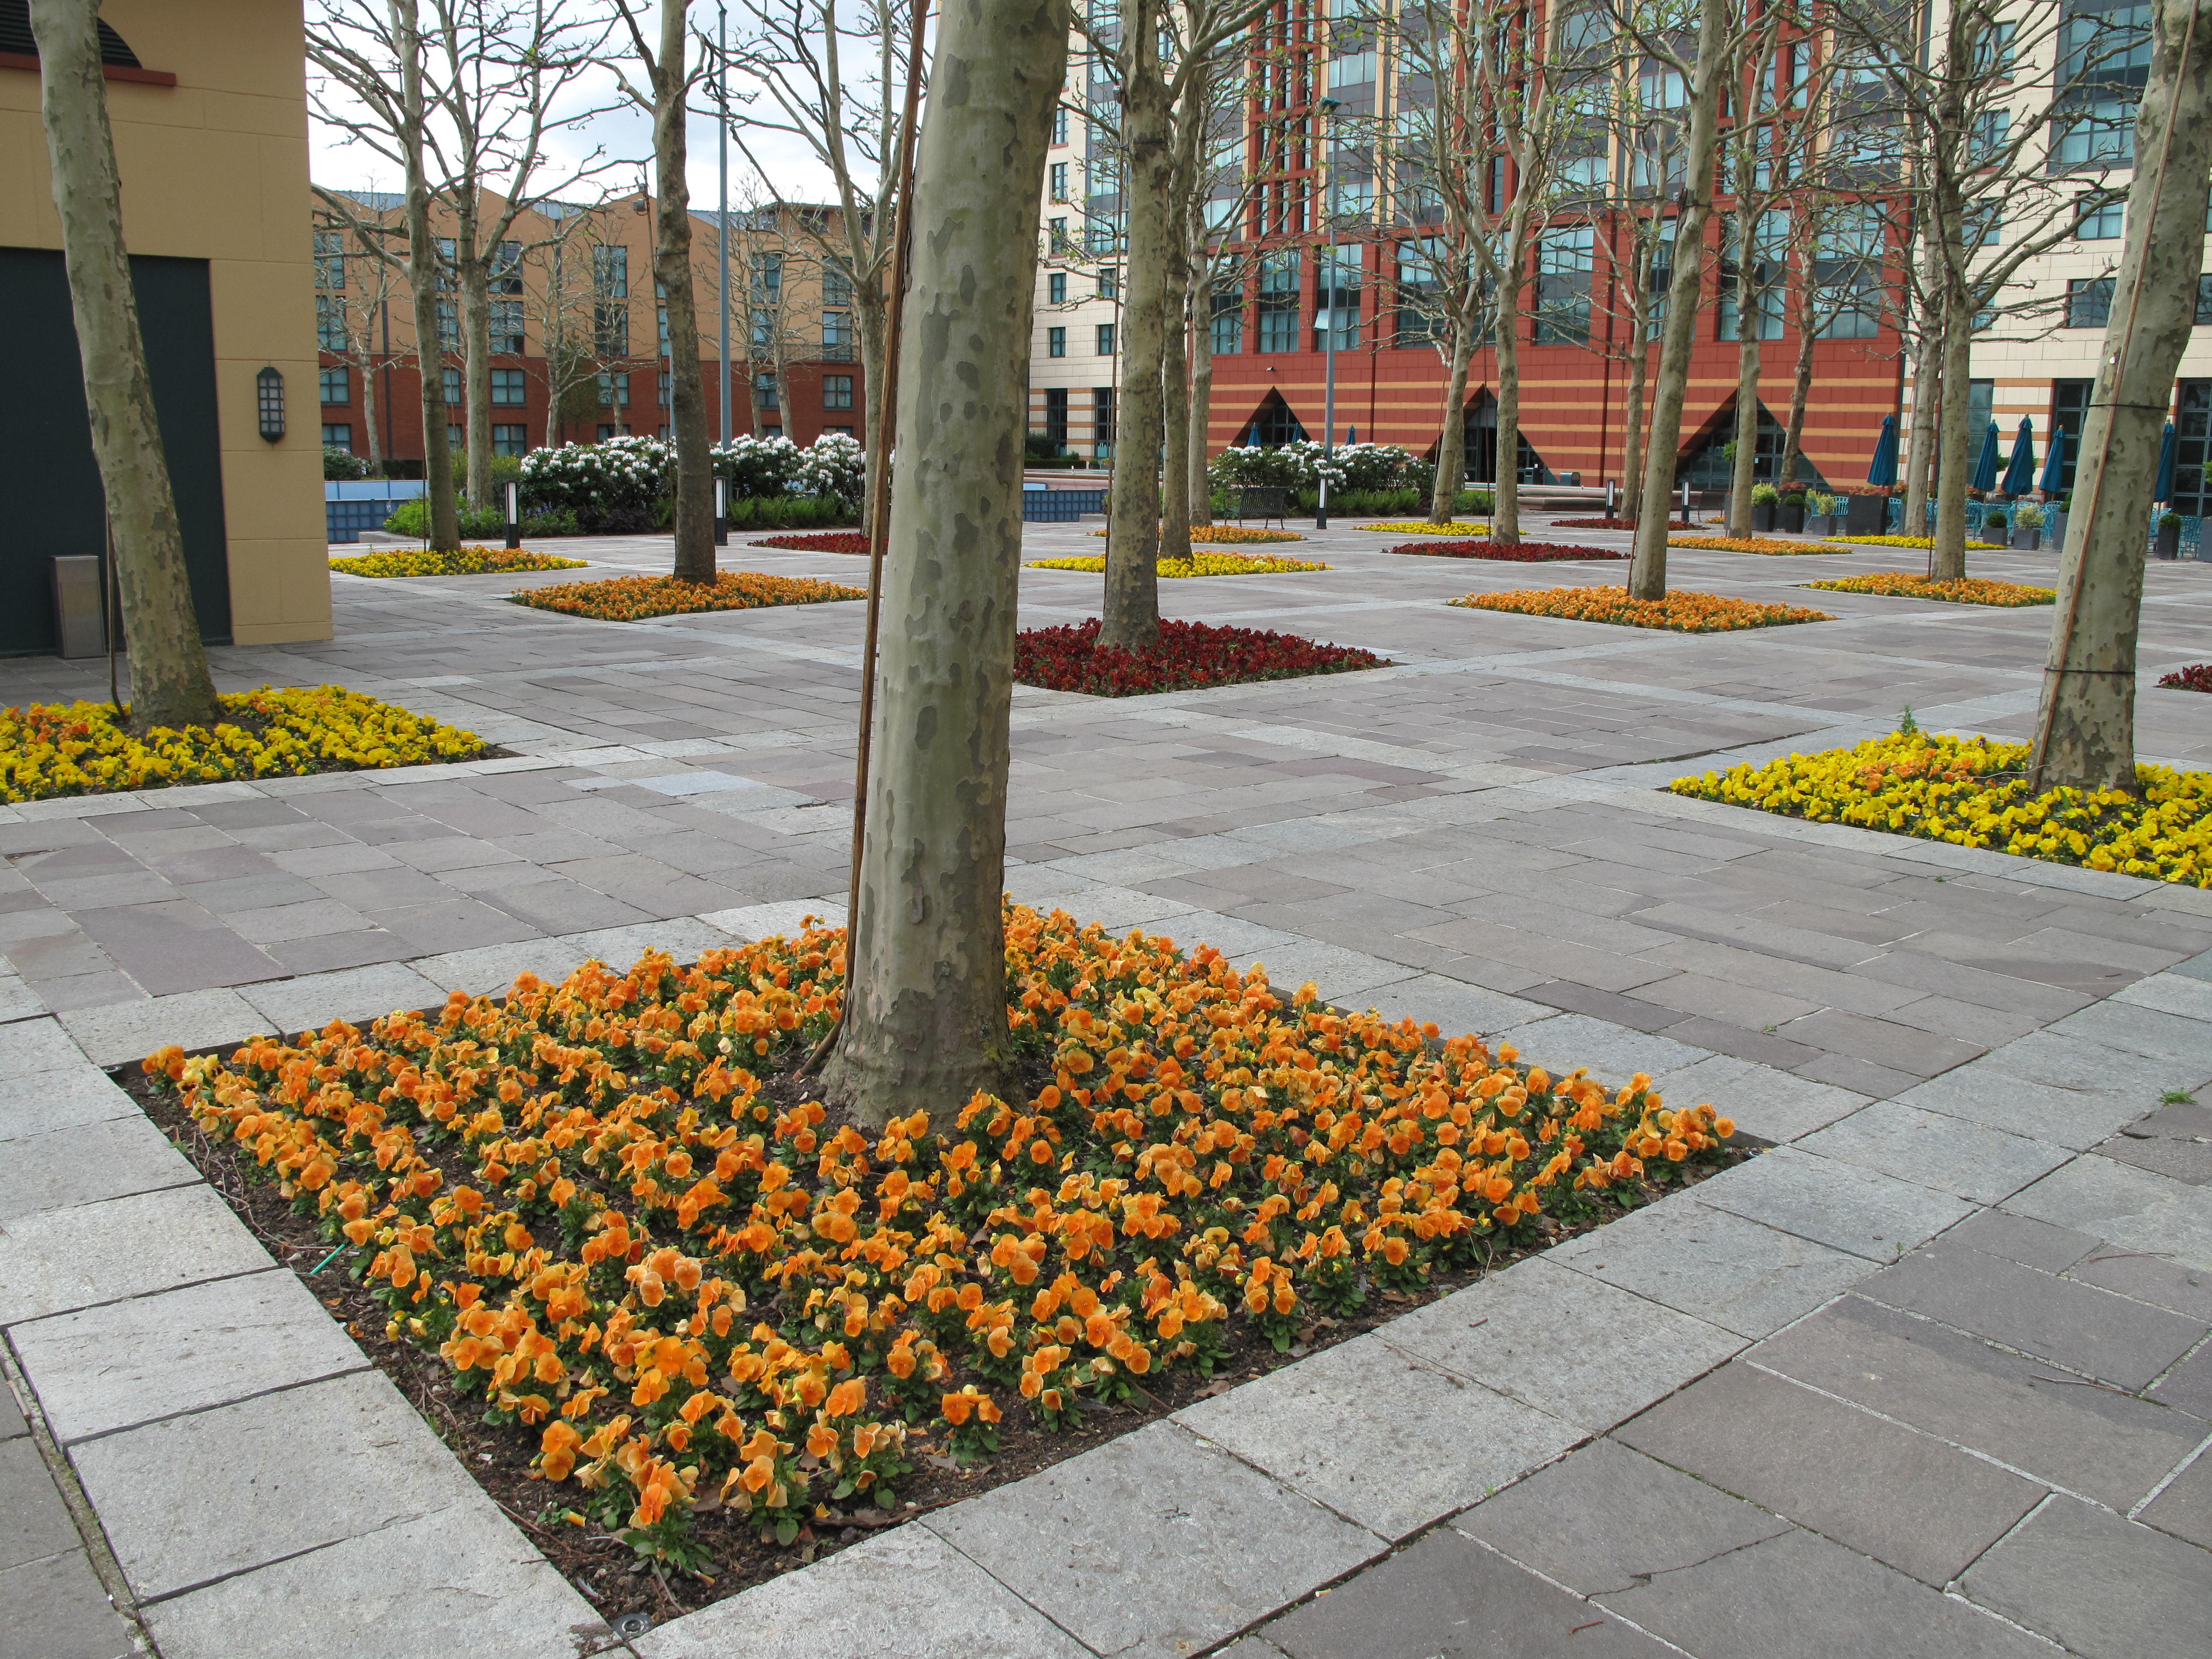 Flower Bed Of The Hotel